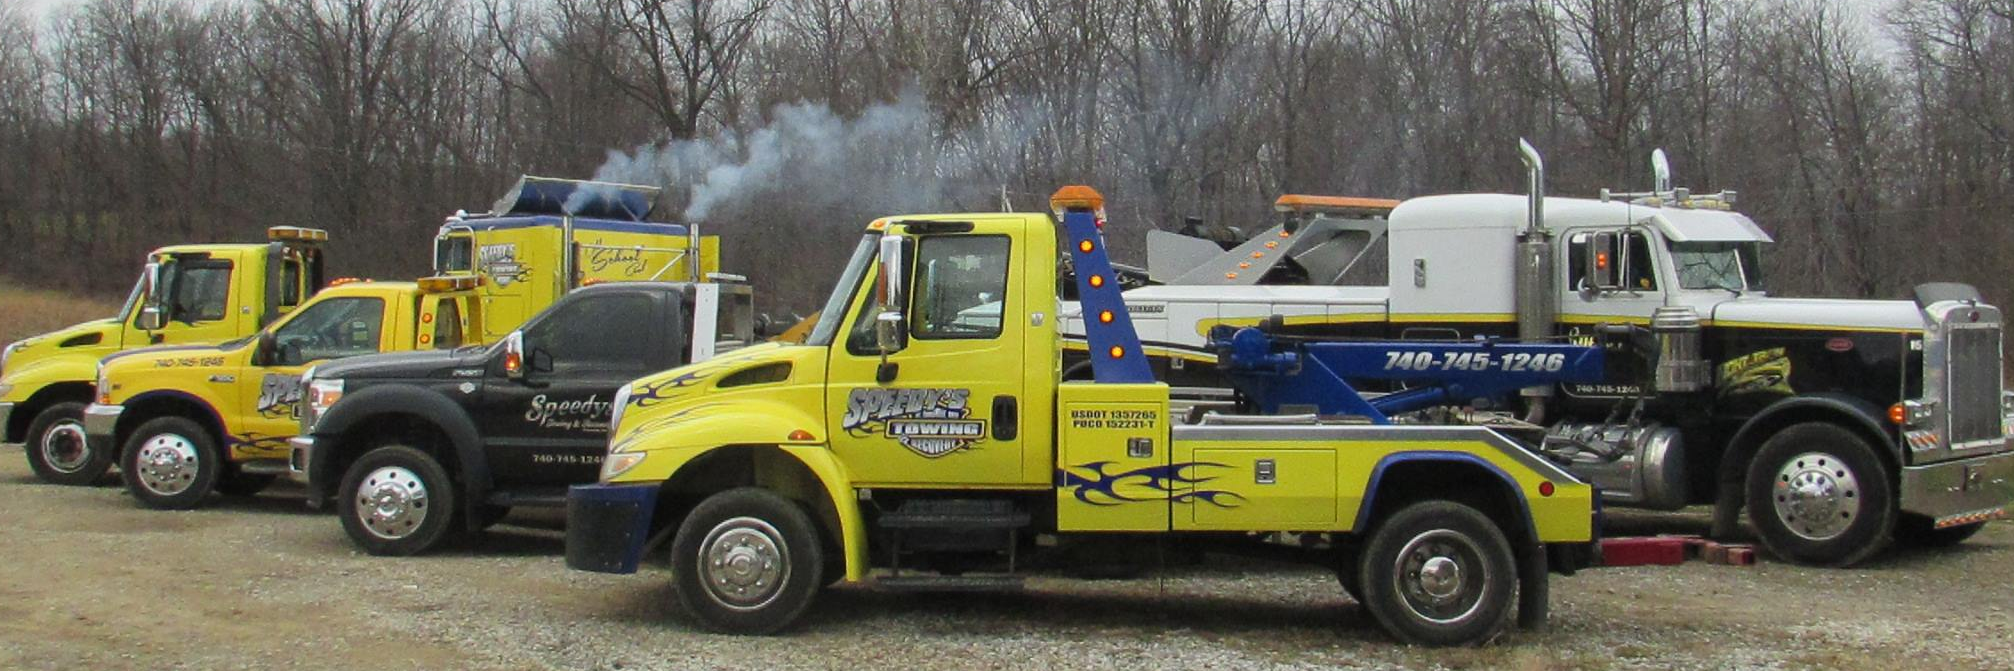 Speedy's Towing & Recovery Towing.com Profile Banner